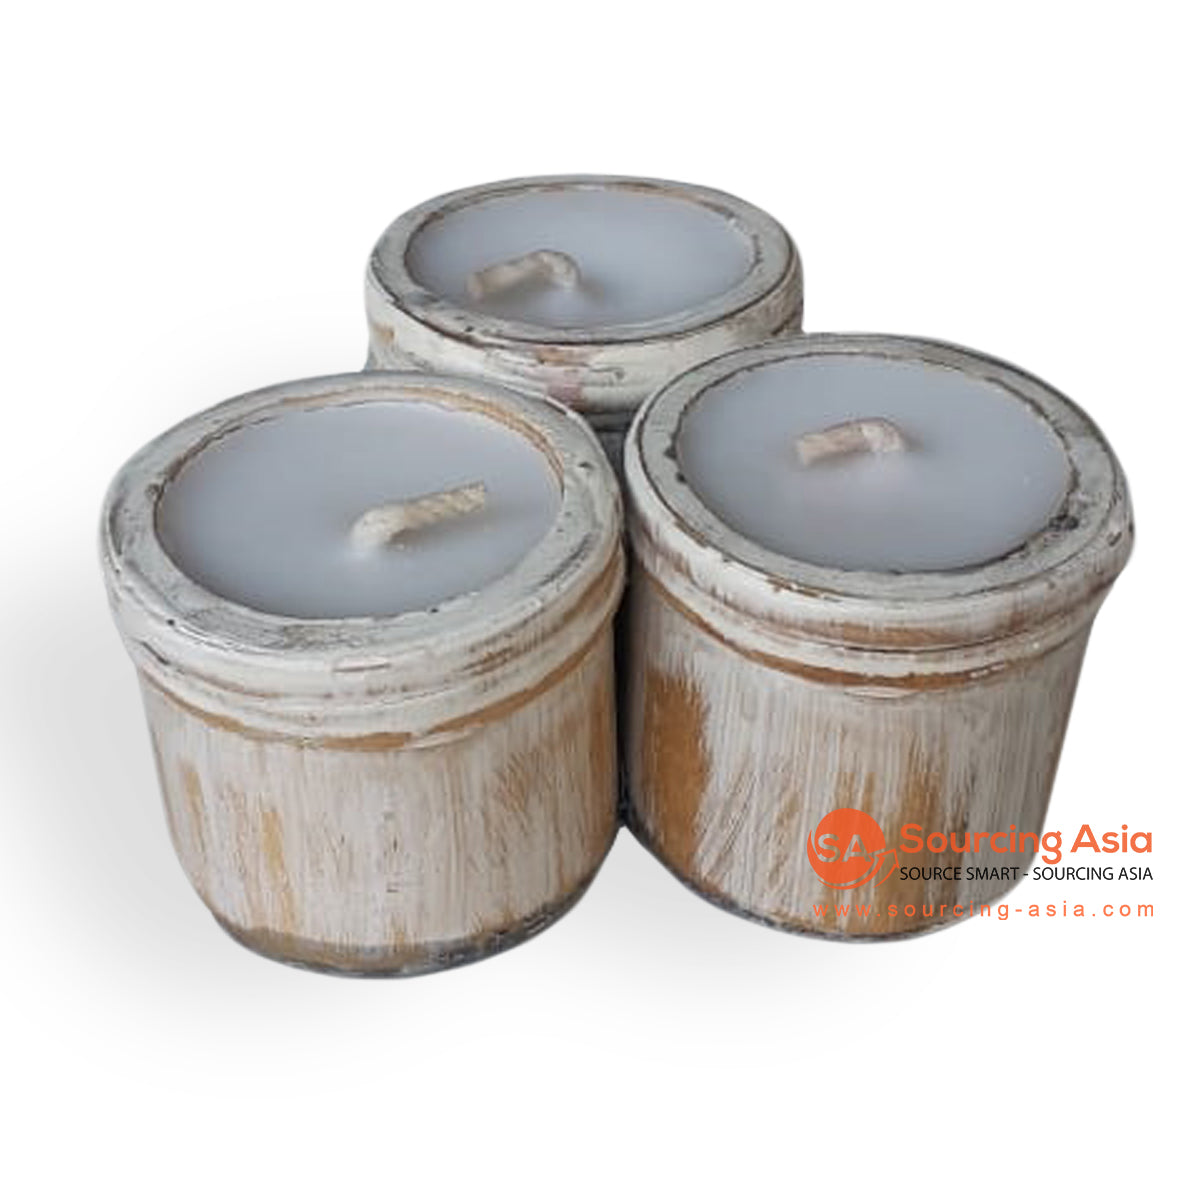 BSC019-1 SET OF 3 CANDLE HOLDER